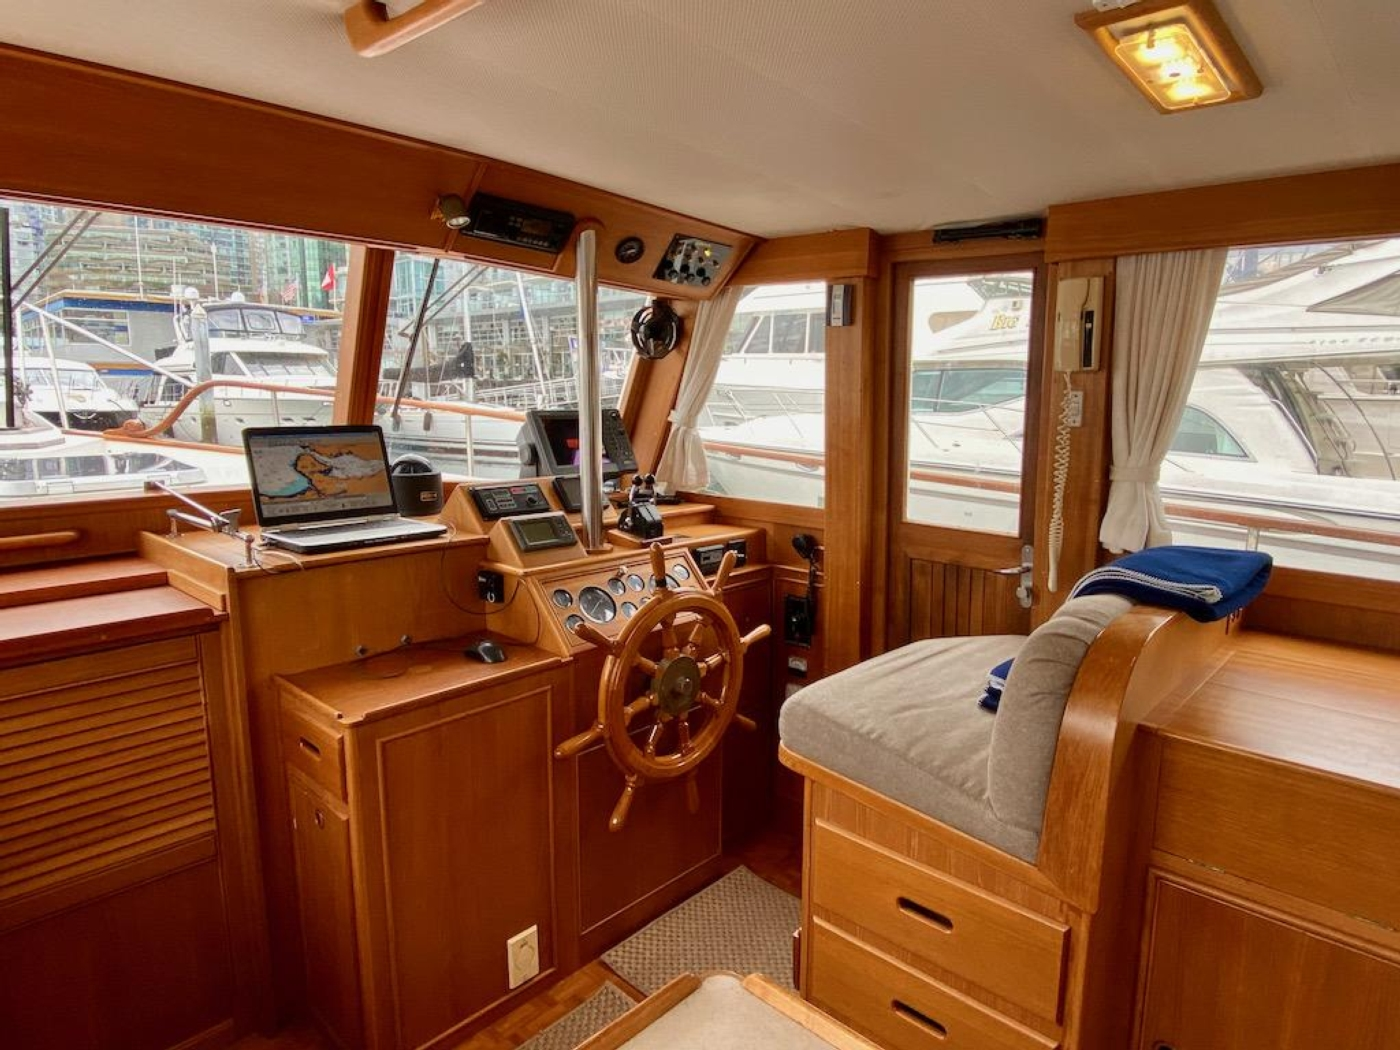 1998 Grand Banks 42 Classic, Lower helm 2